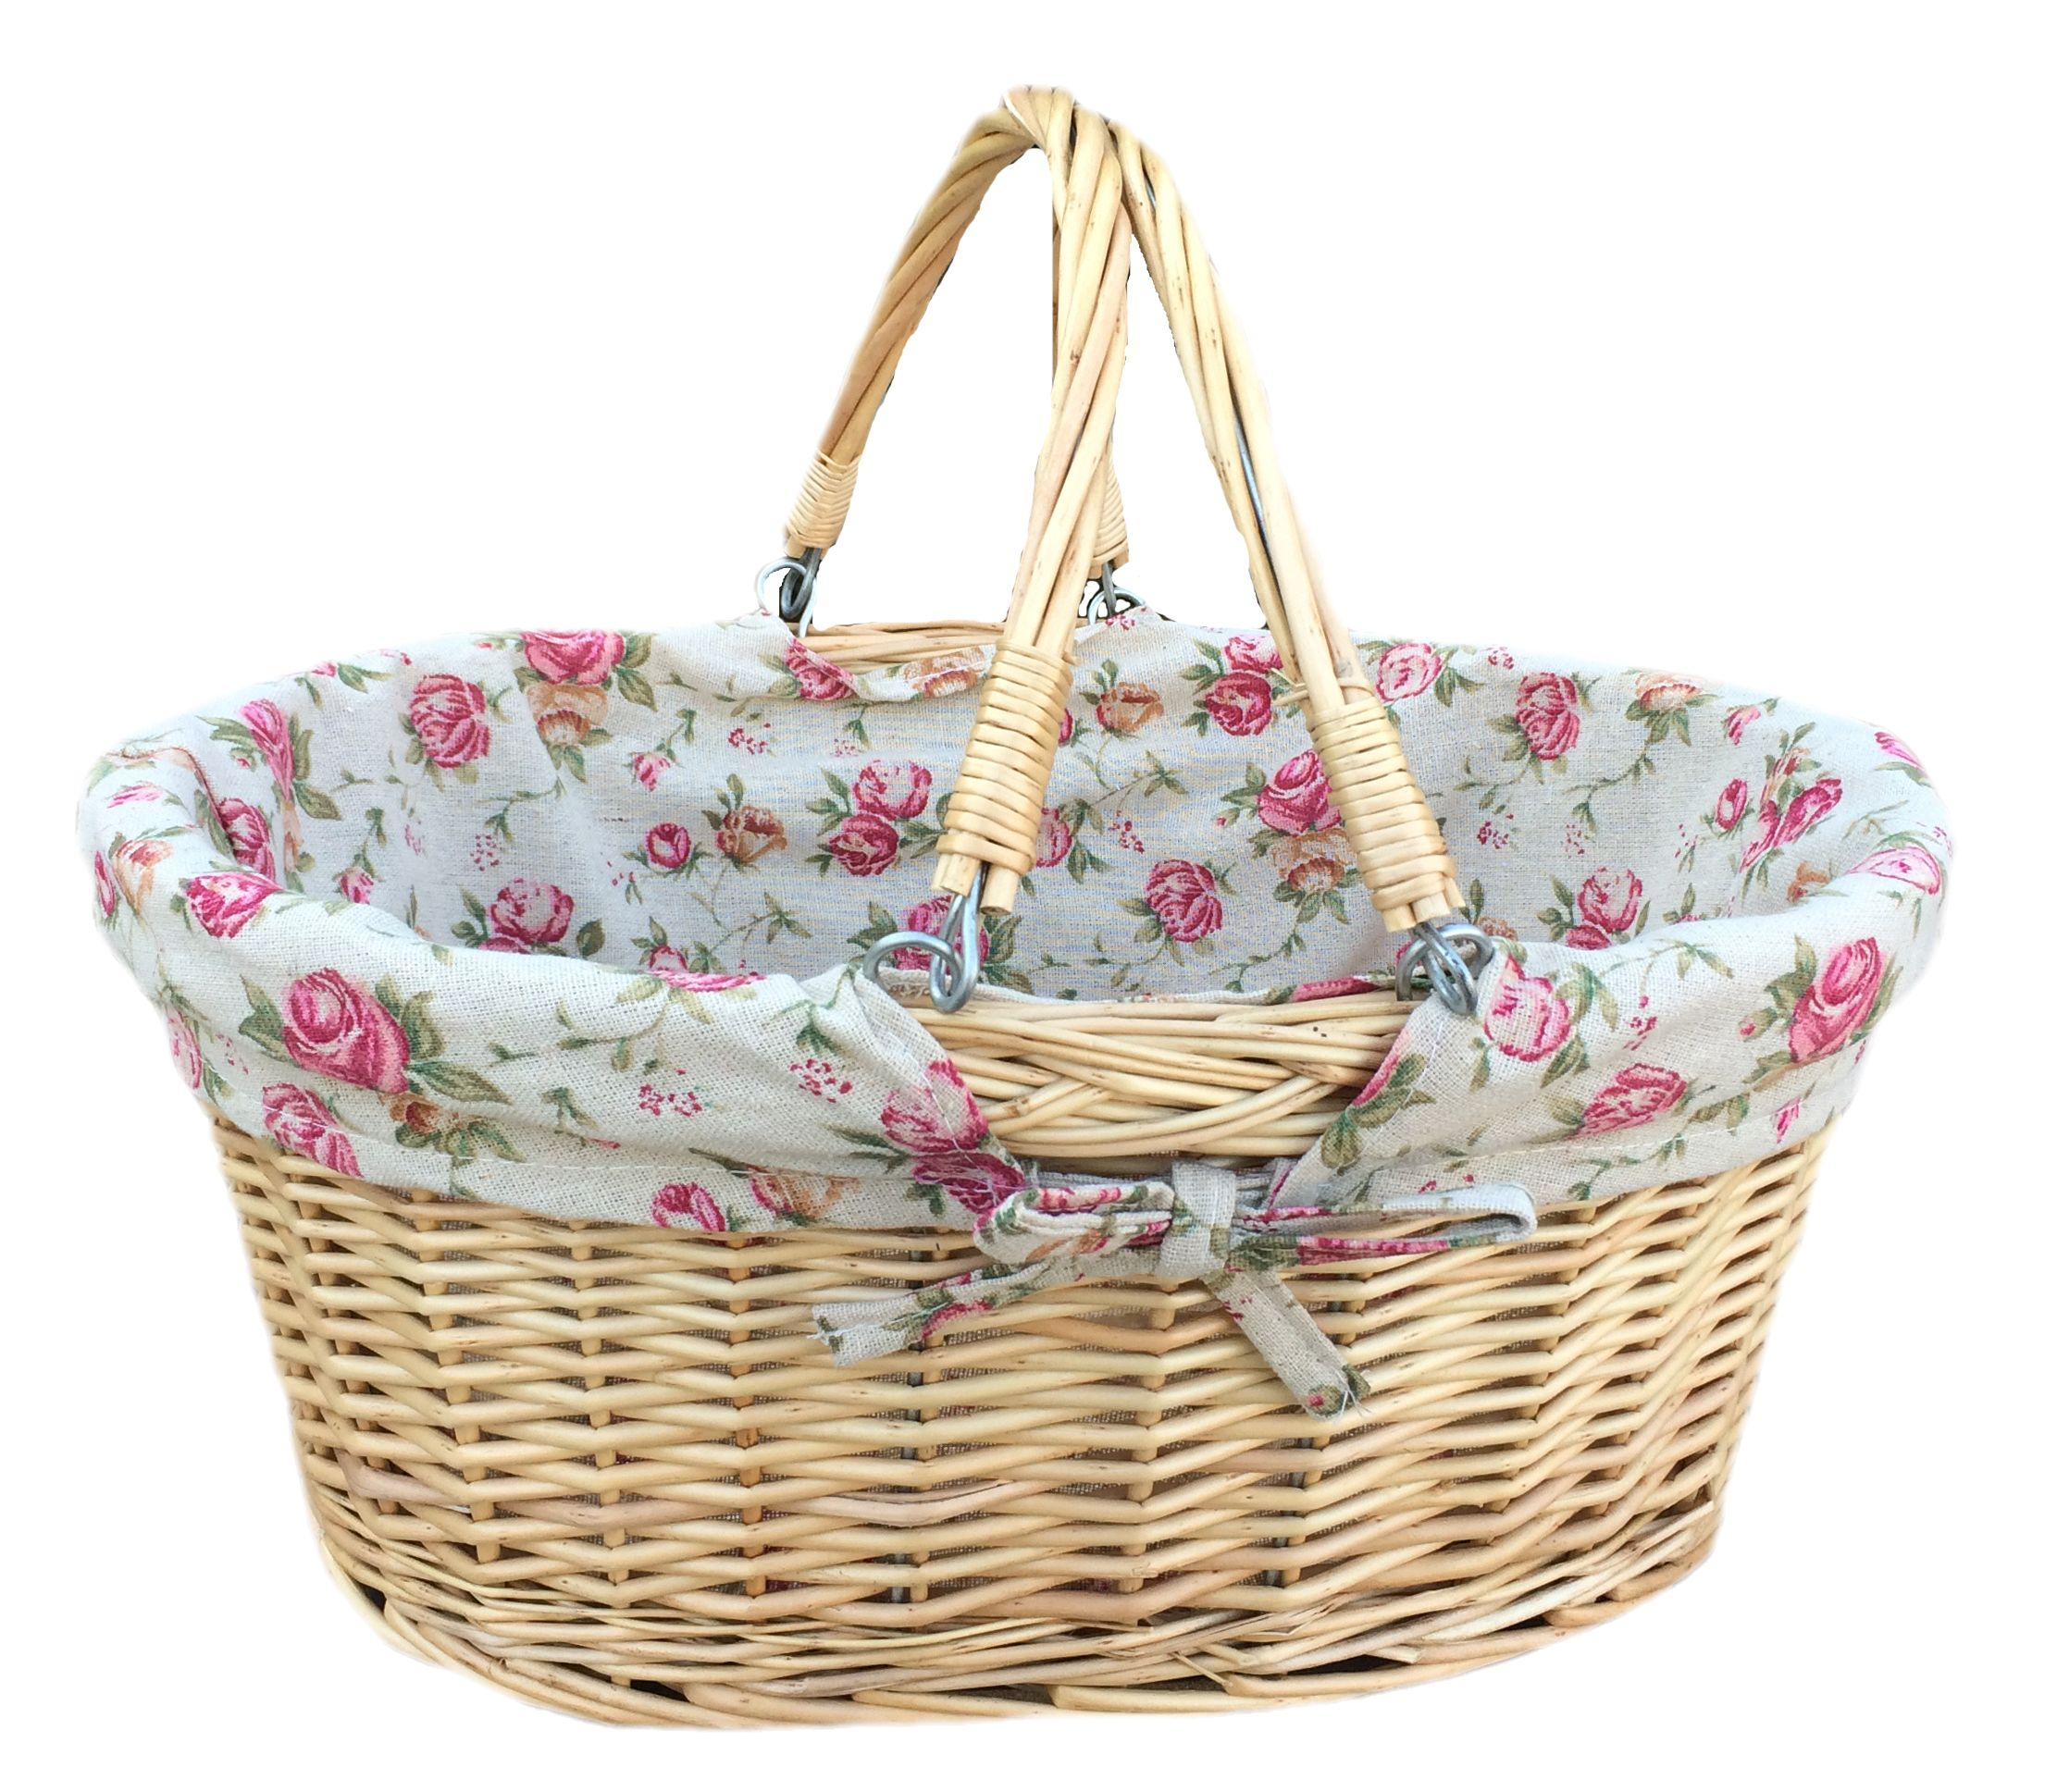 A Large Versatile Oval Basket That Is Ideal For Shopping, Displays, Pick  Your Own